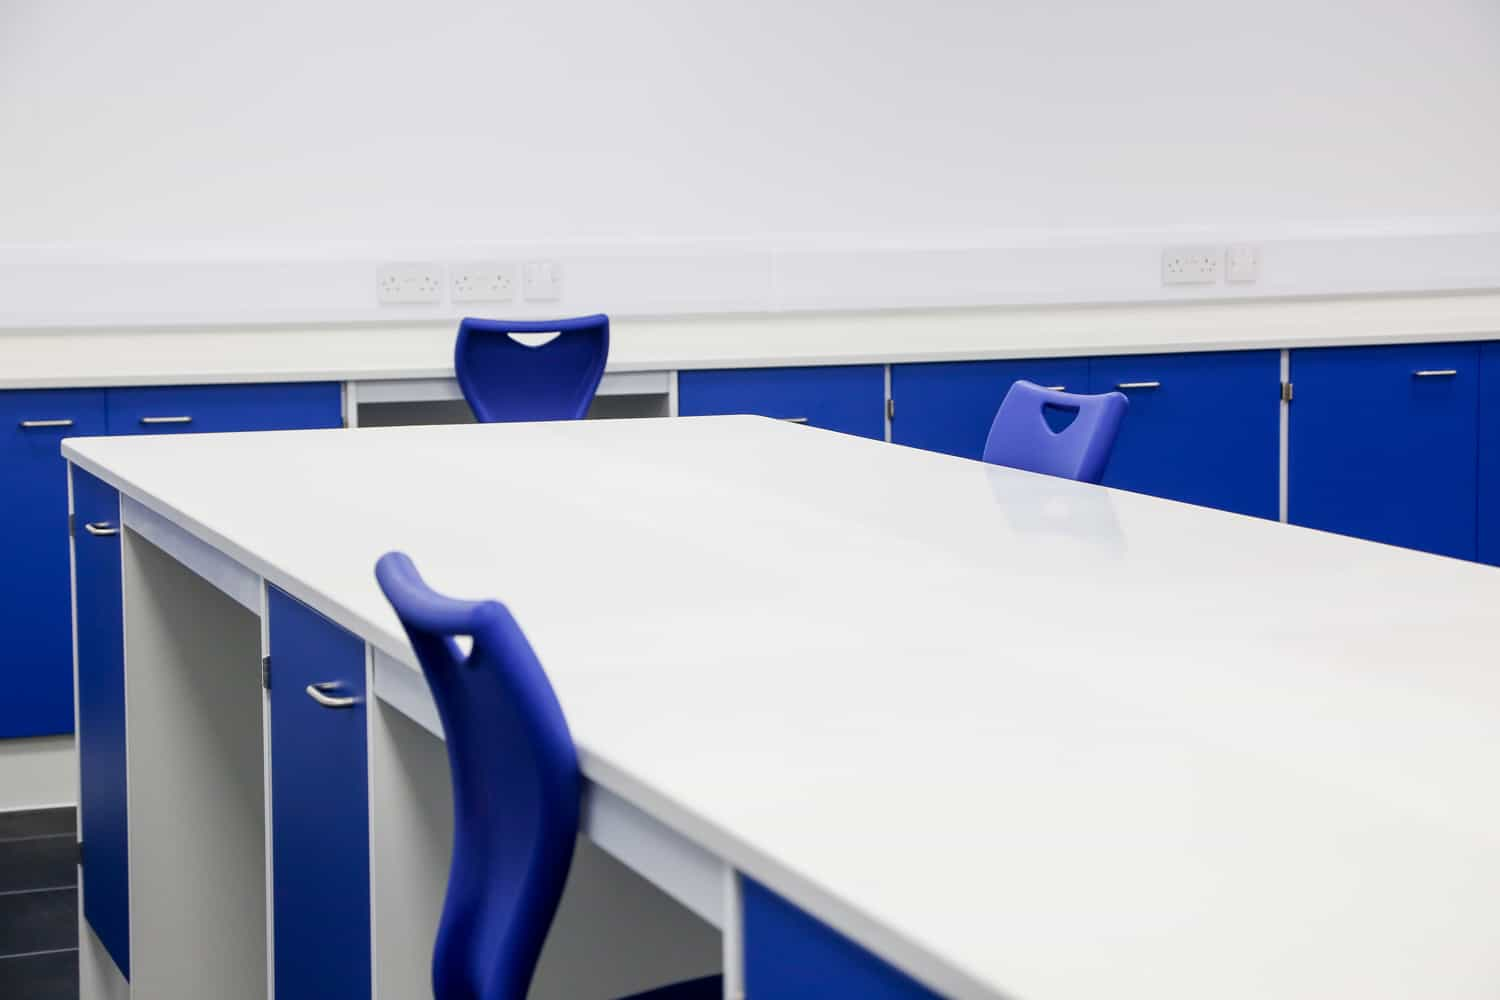 Velstone laboratory worktop for research, industrial, university and medical laboratories.